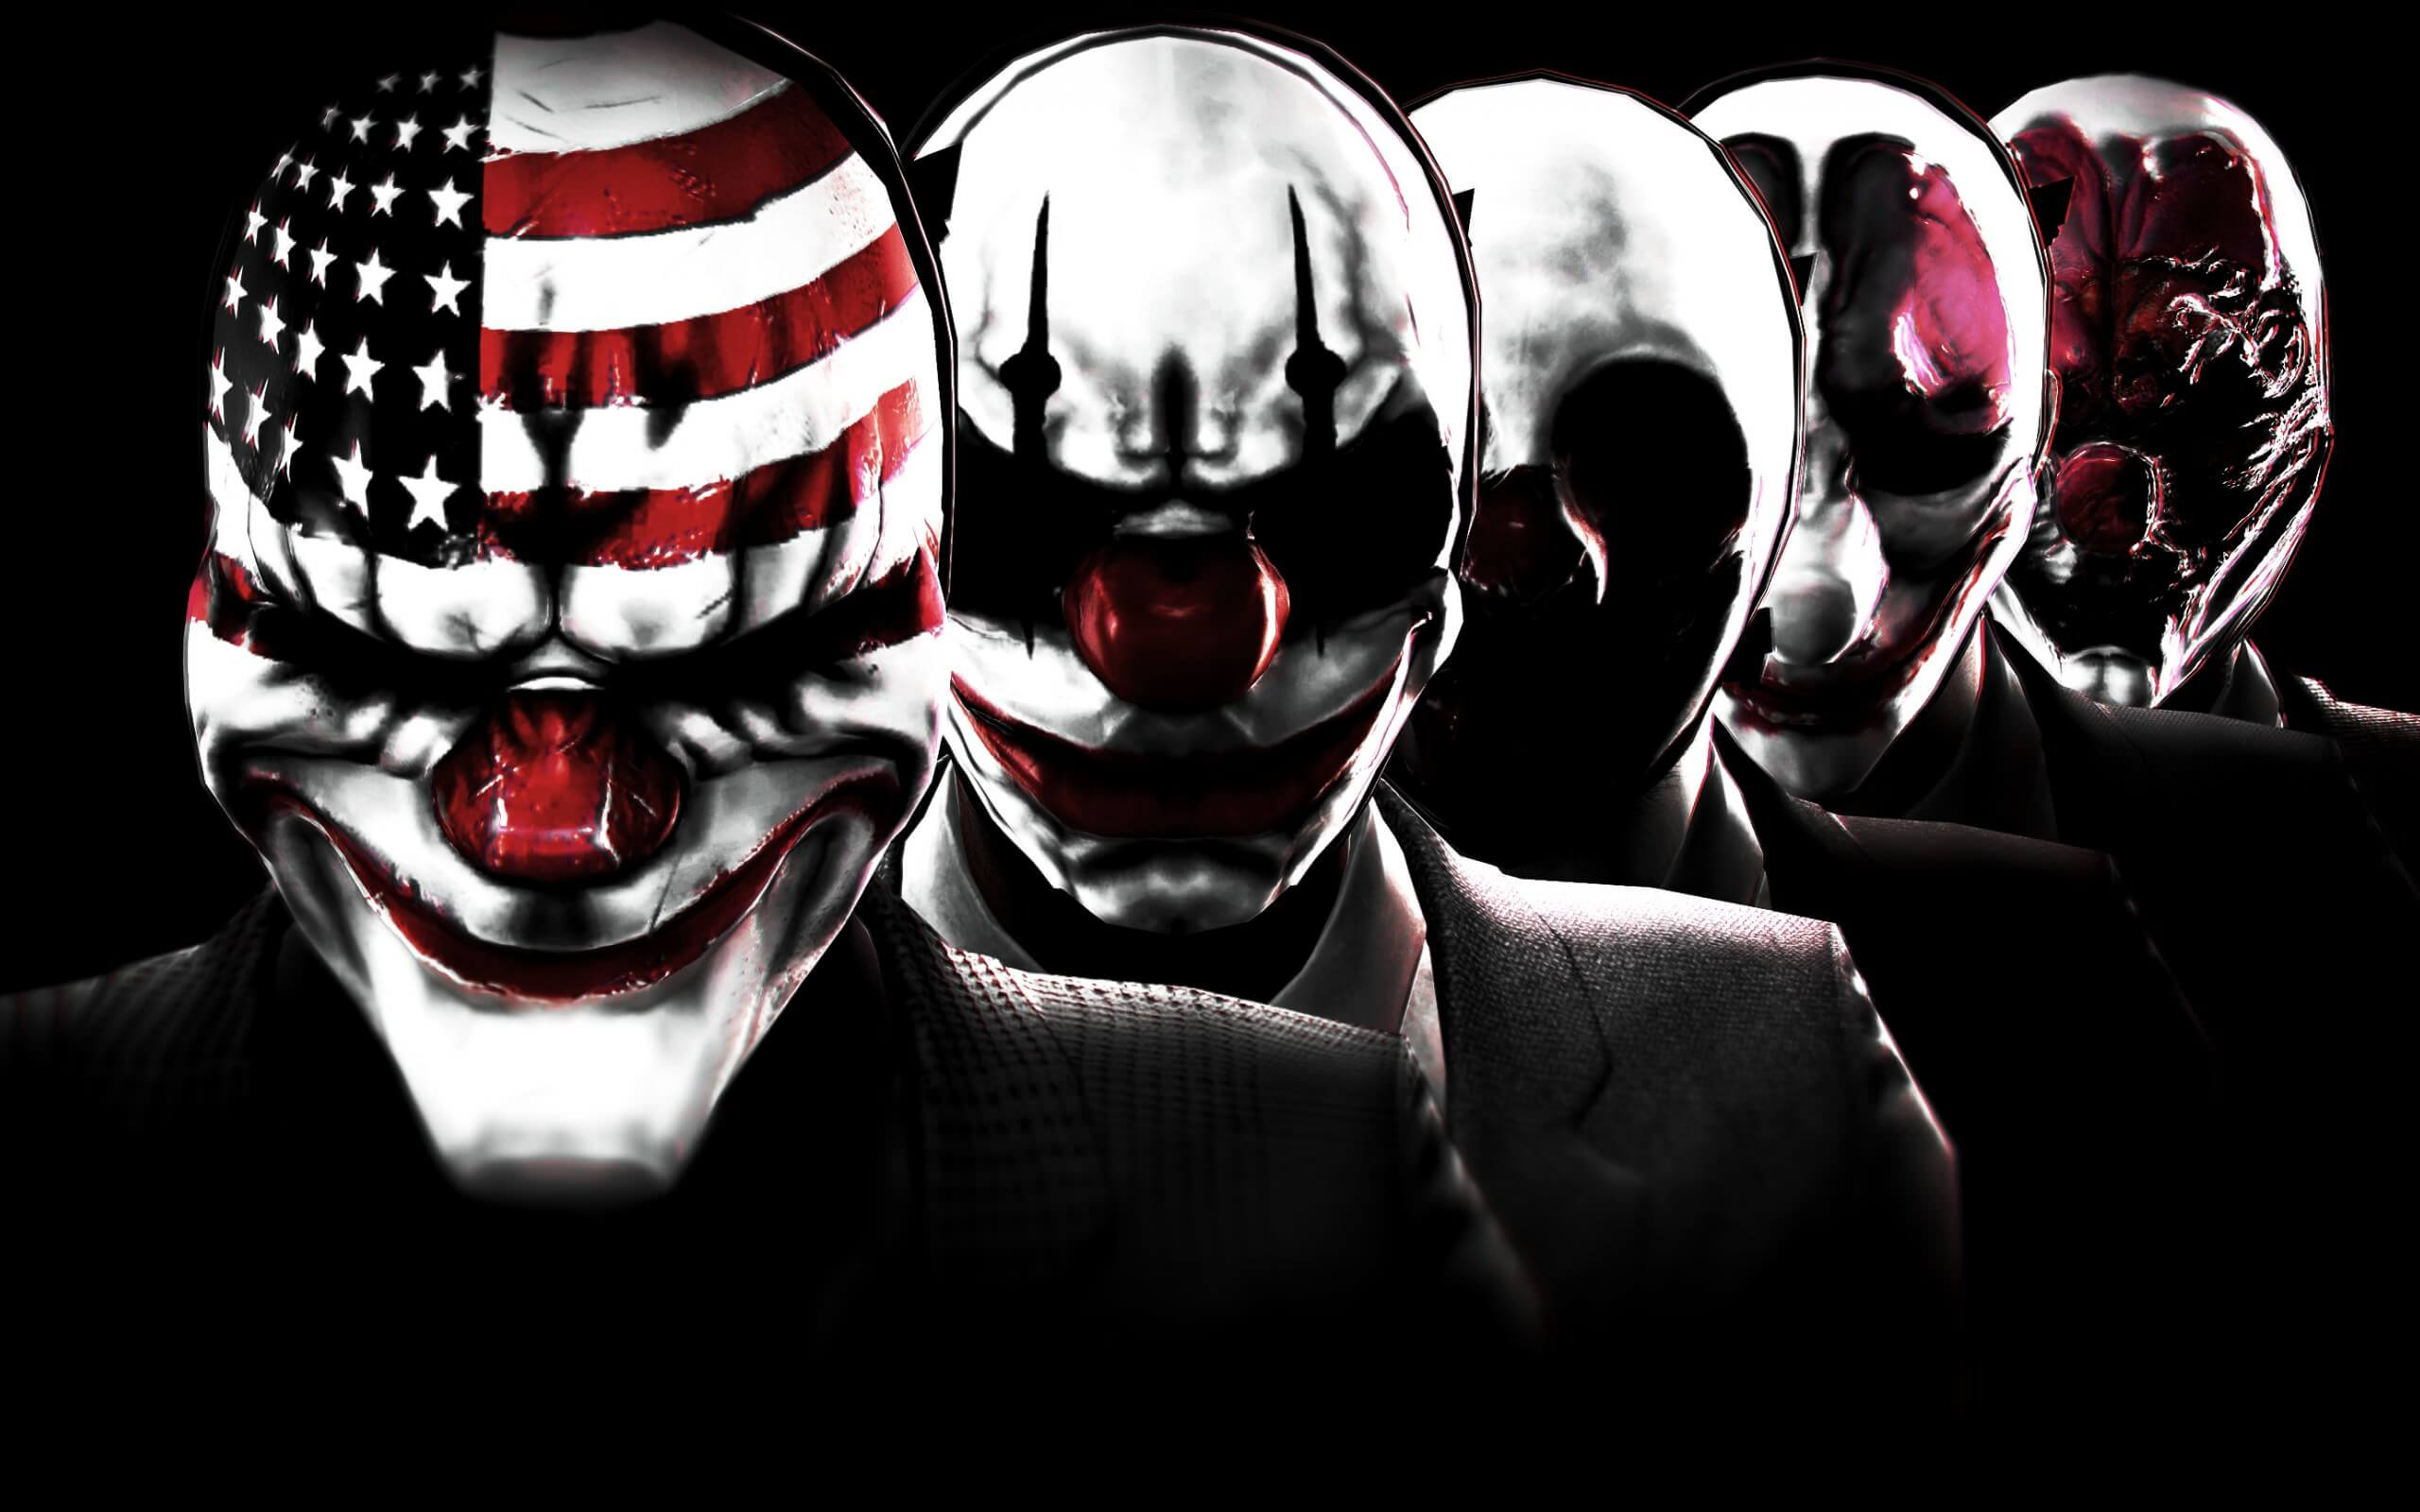 Payday Wallpaper 2 Cool